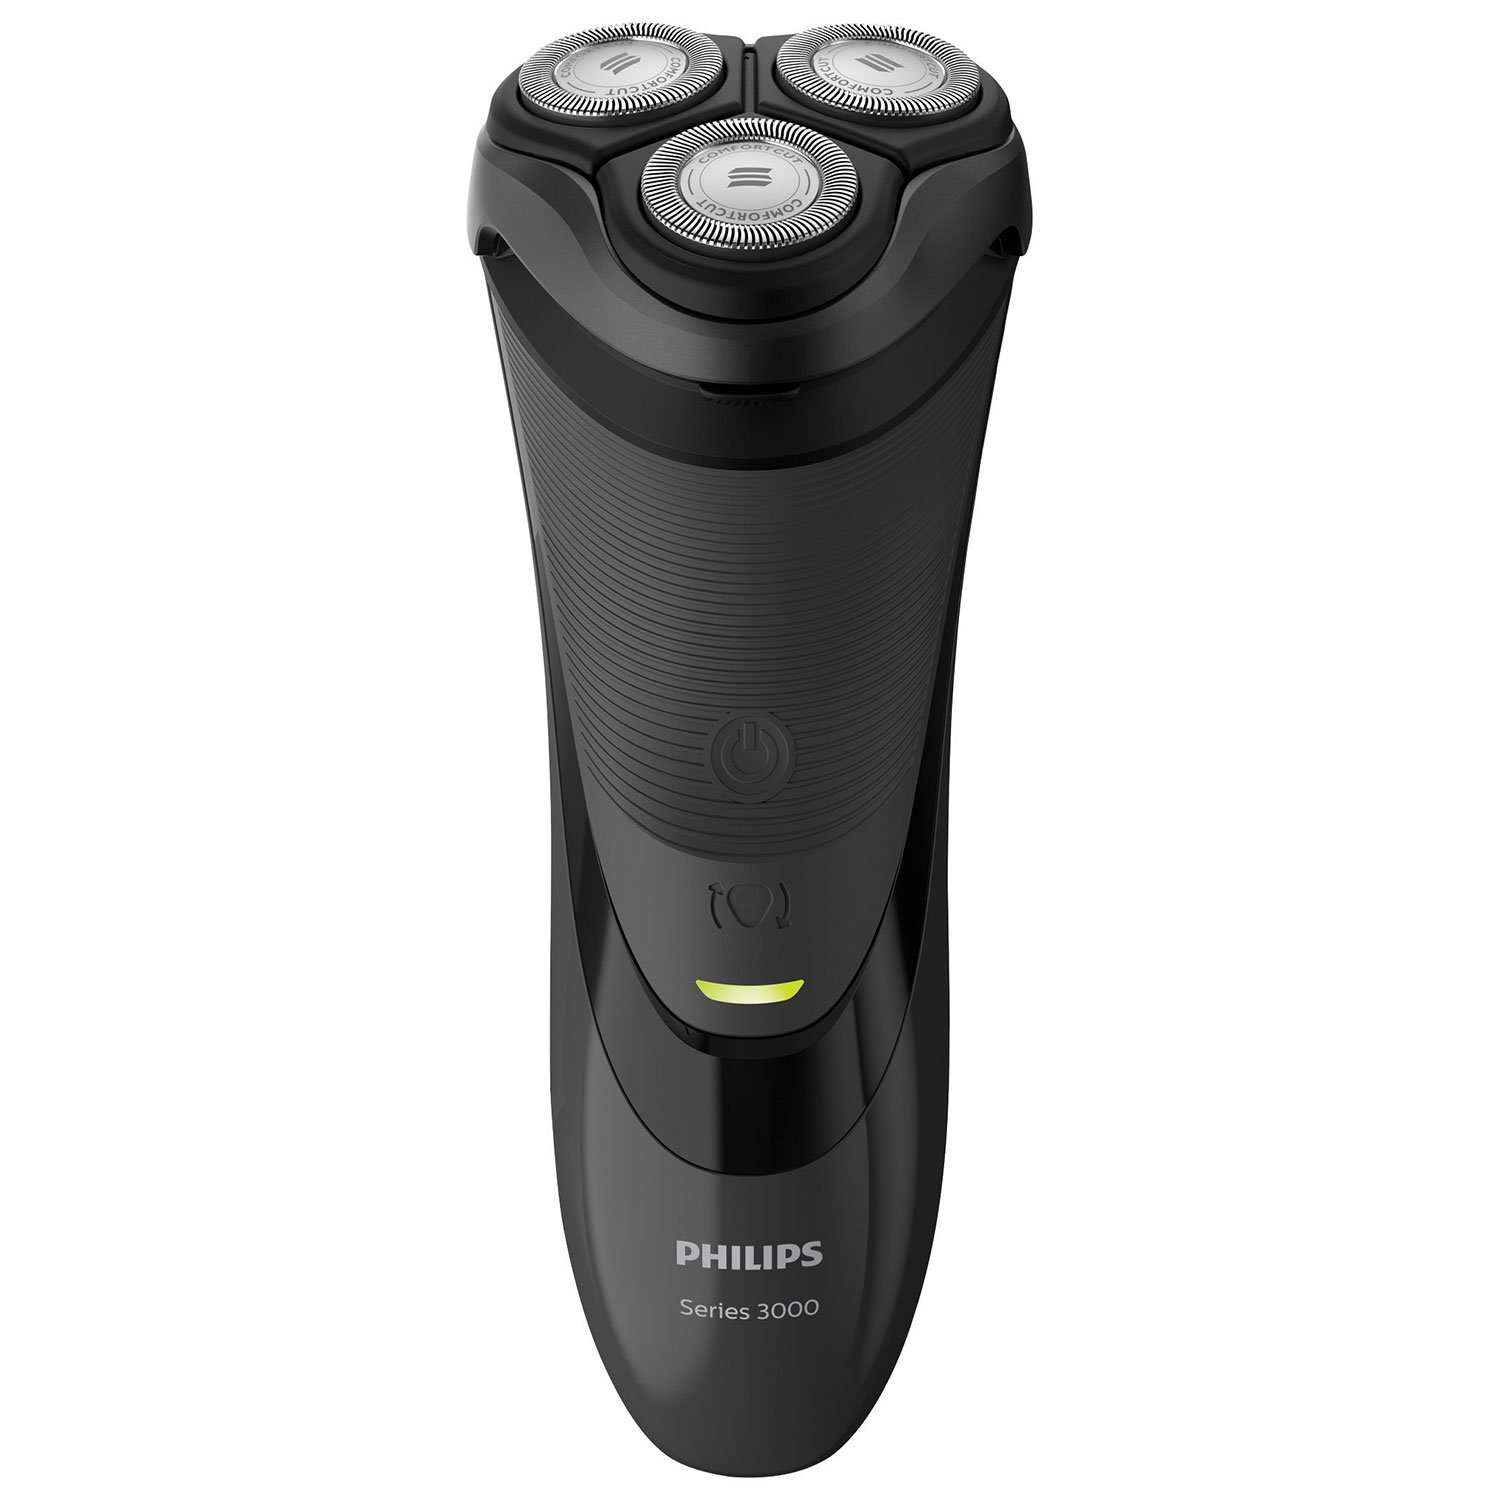 Philips Shaver Series 3000 Dry Electric Shaver (S3110/08) (Certified Refurbished)